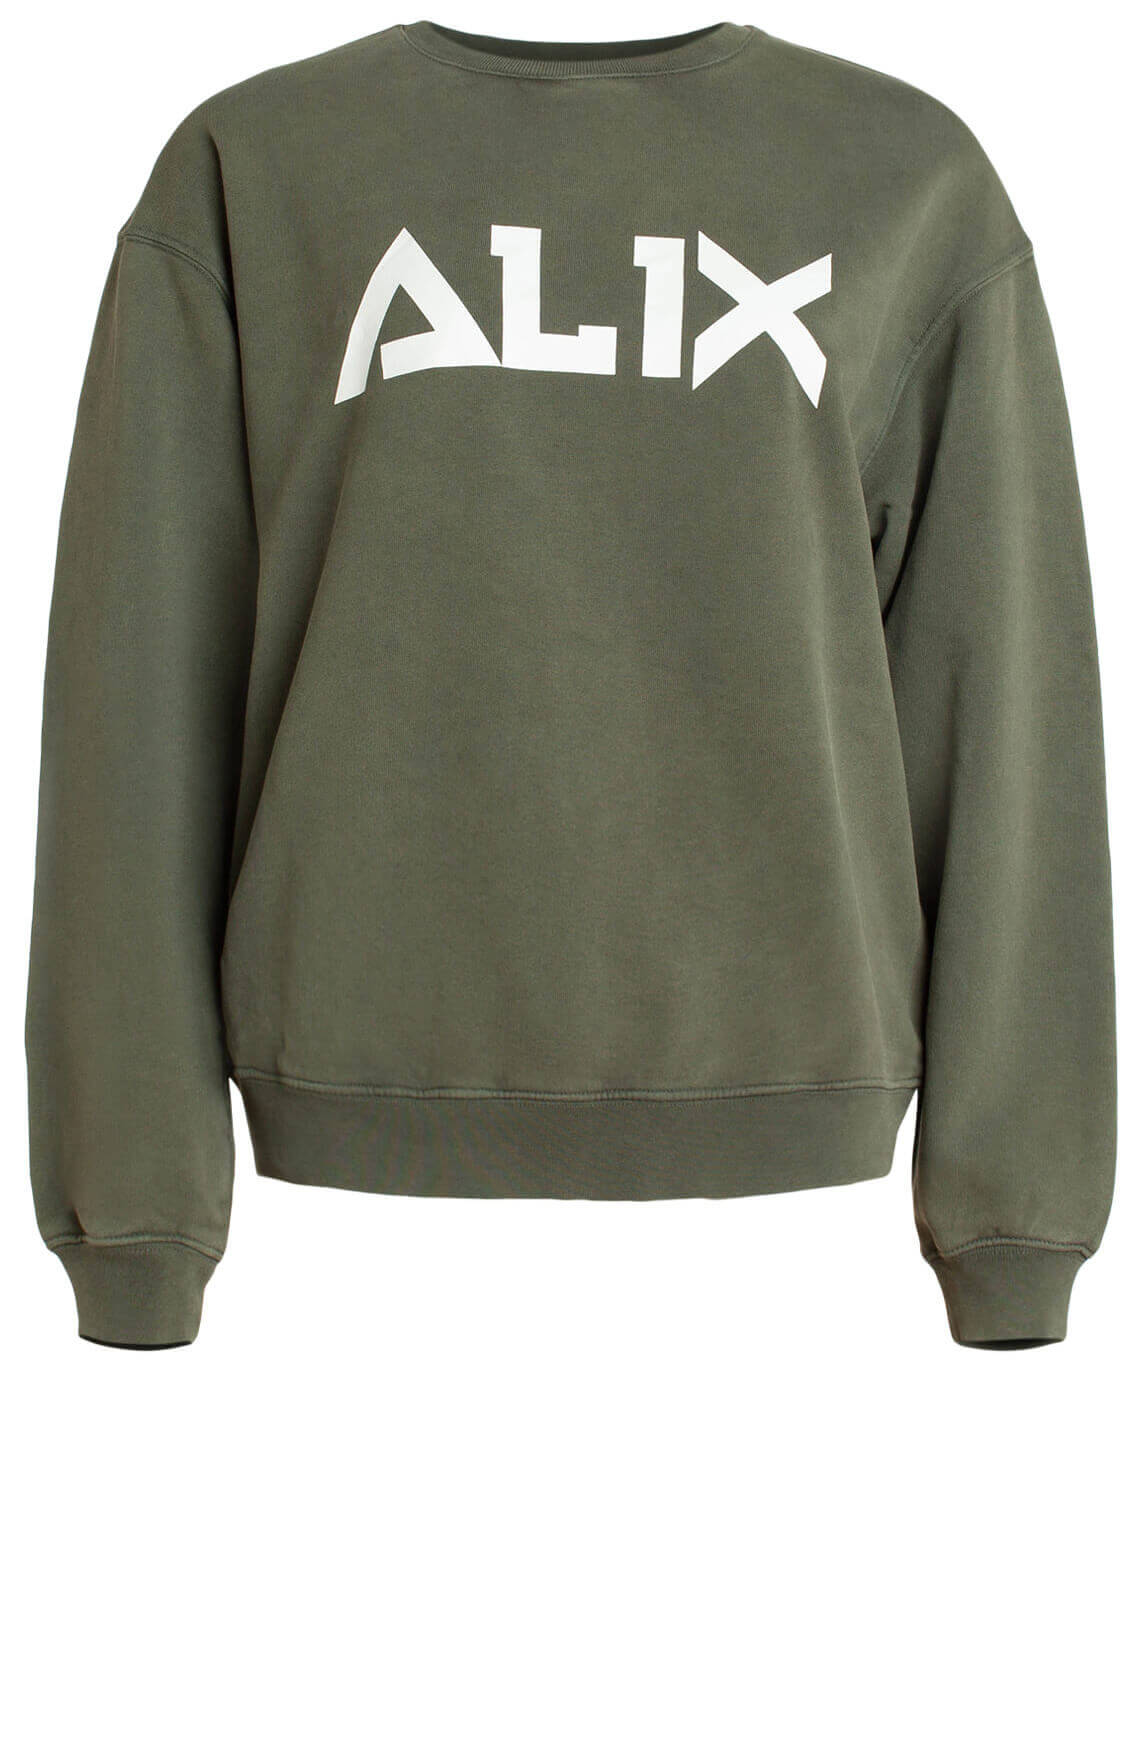 Alix The Label Dames Sweater met tekstopdruk groen